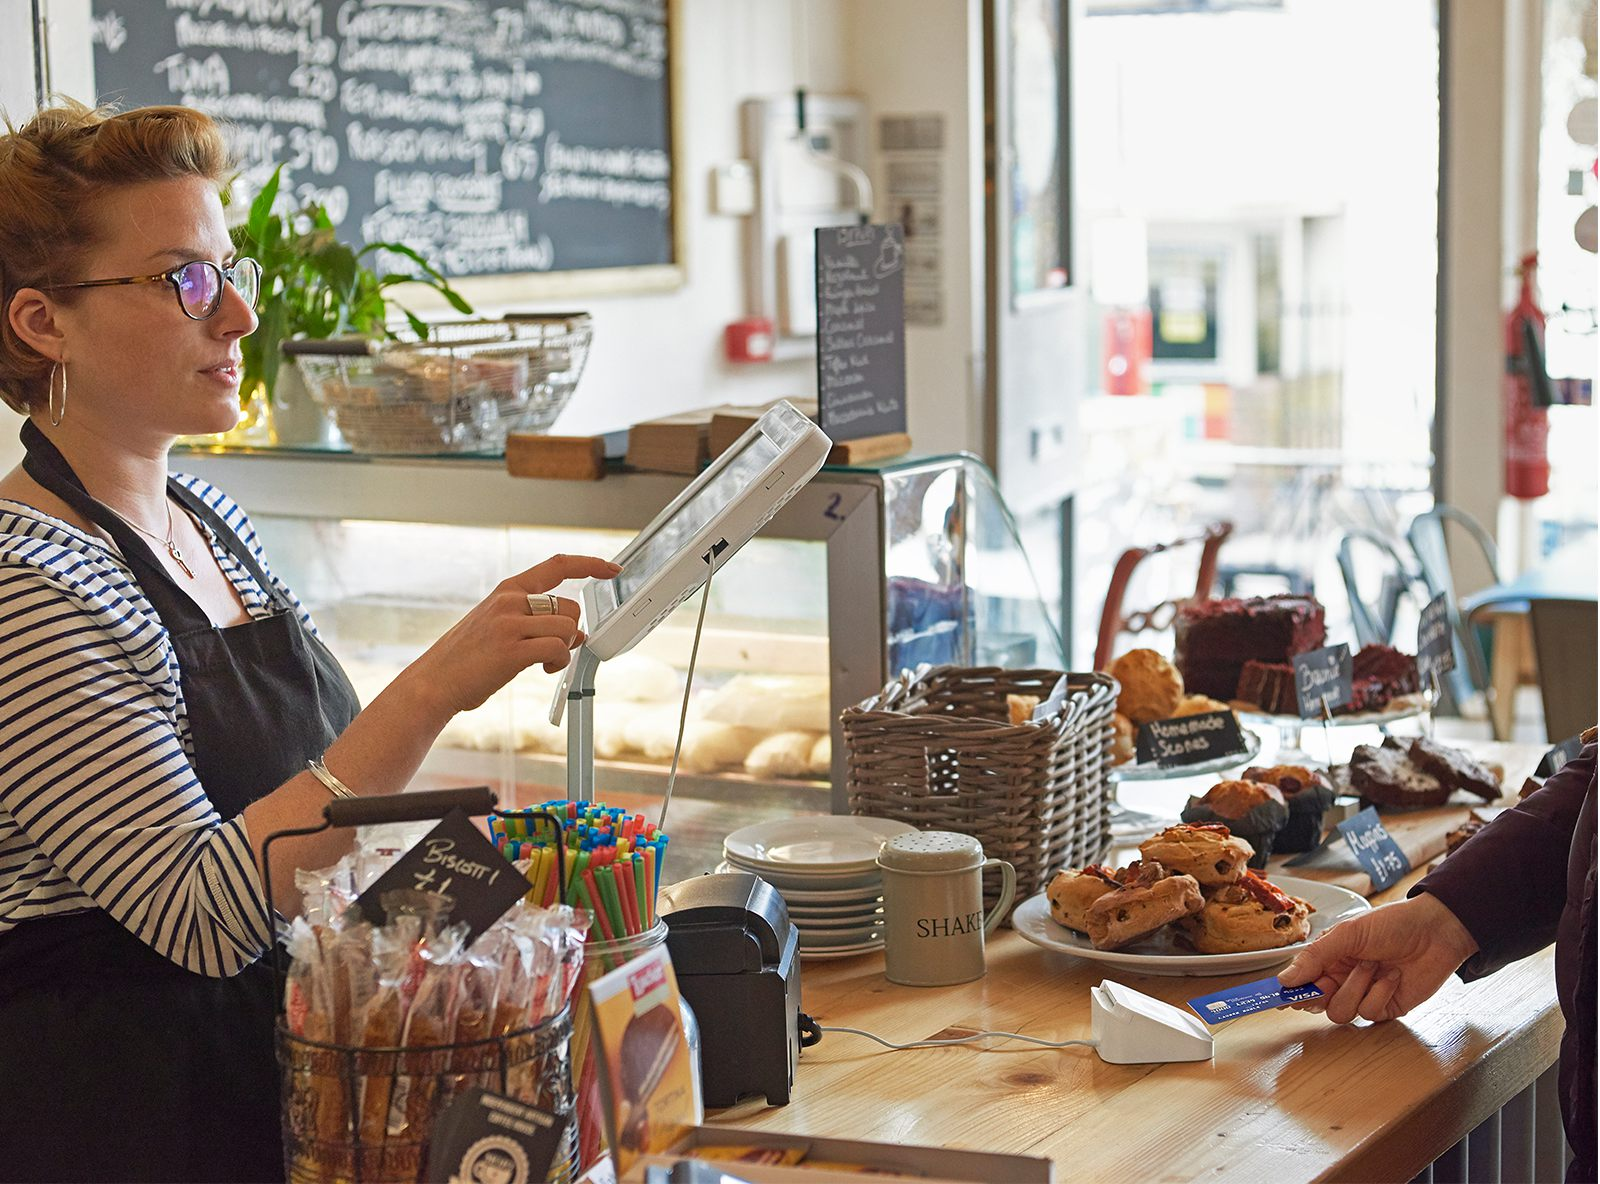 Female cafe owner taking Square card payment